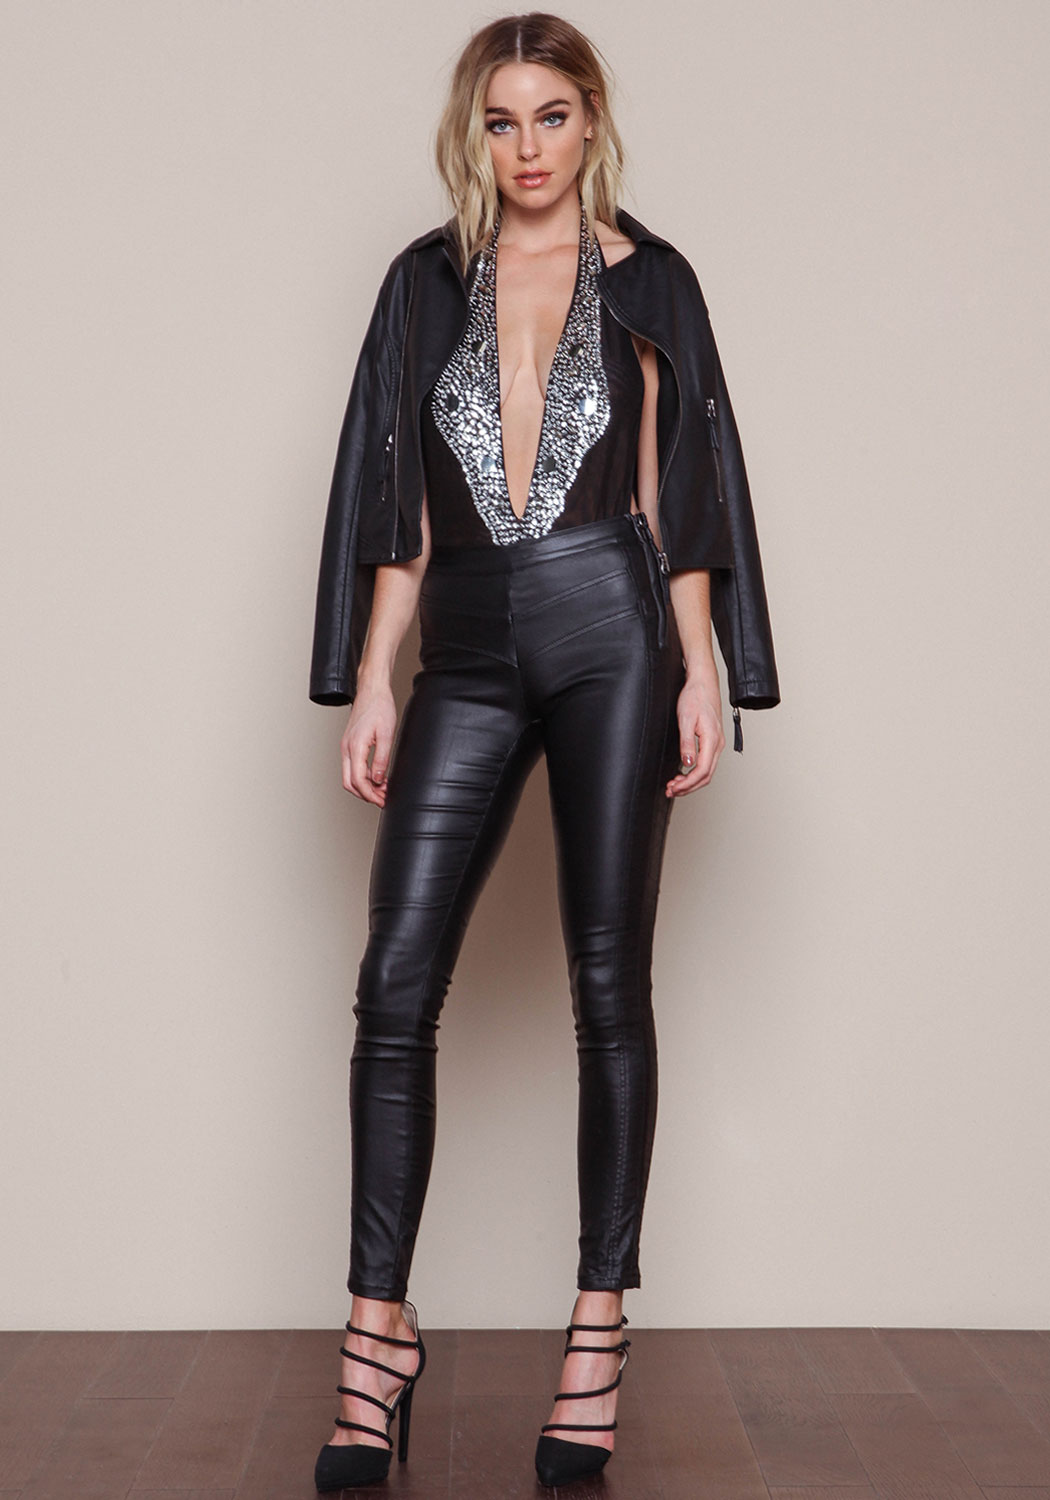 Lovely Ladies In Leather Elizabeth Turner In Leather Pants